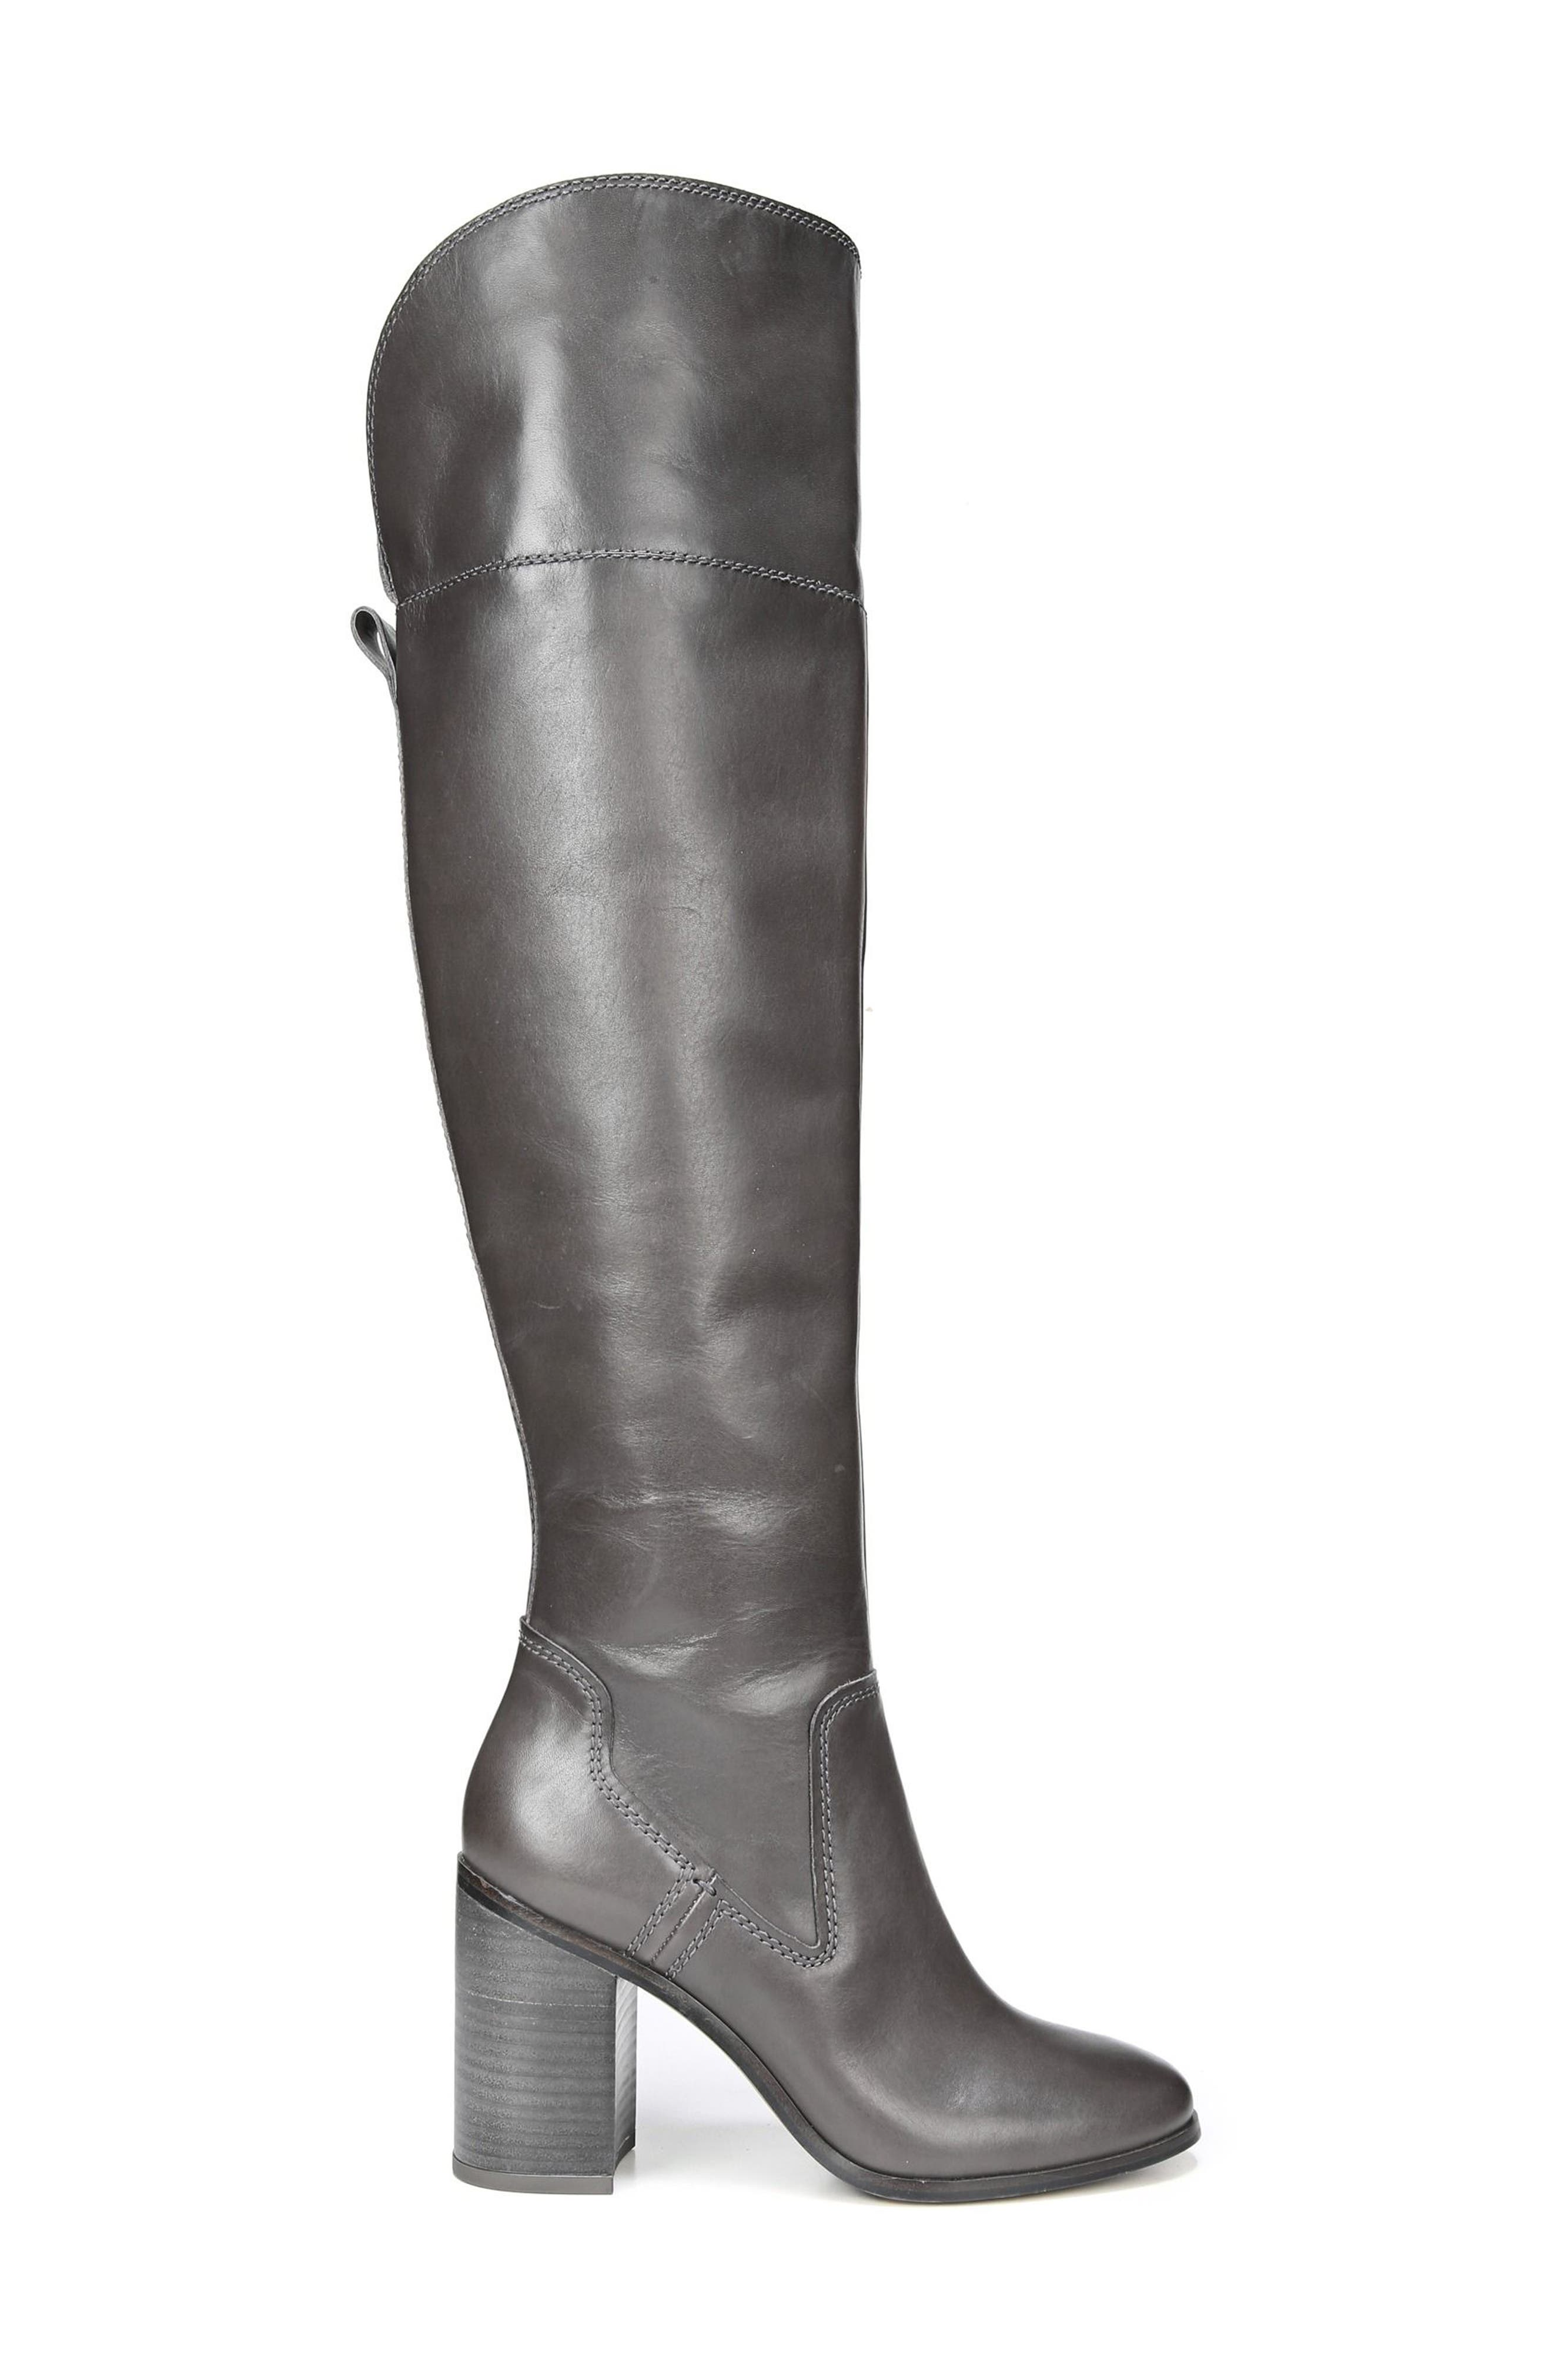 Freda Over the Knee Boot,                             Alternate thumbnail 3, color,                             Peat Leather